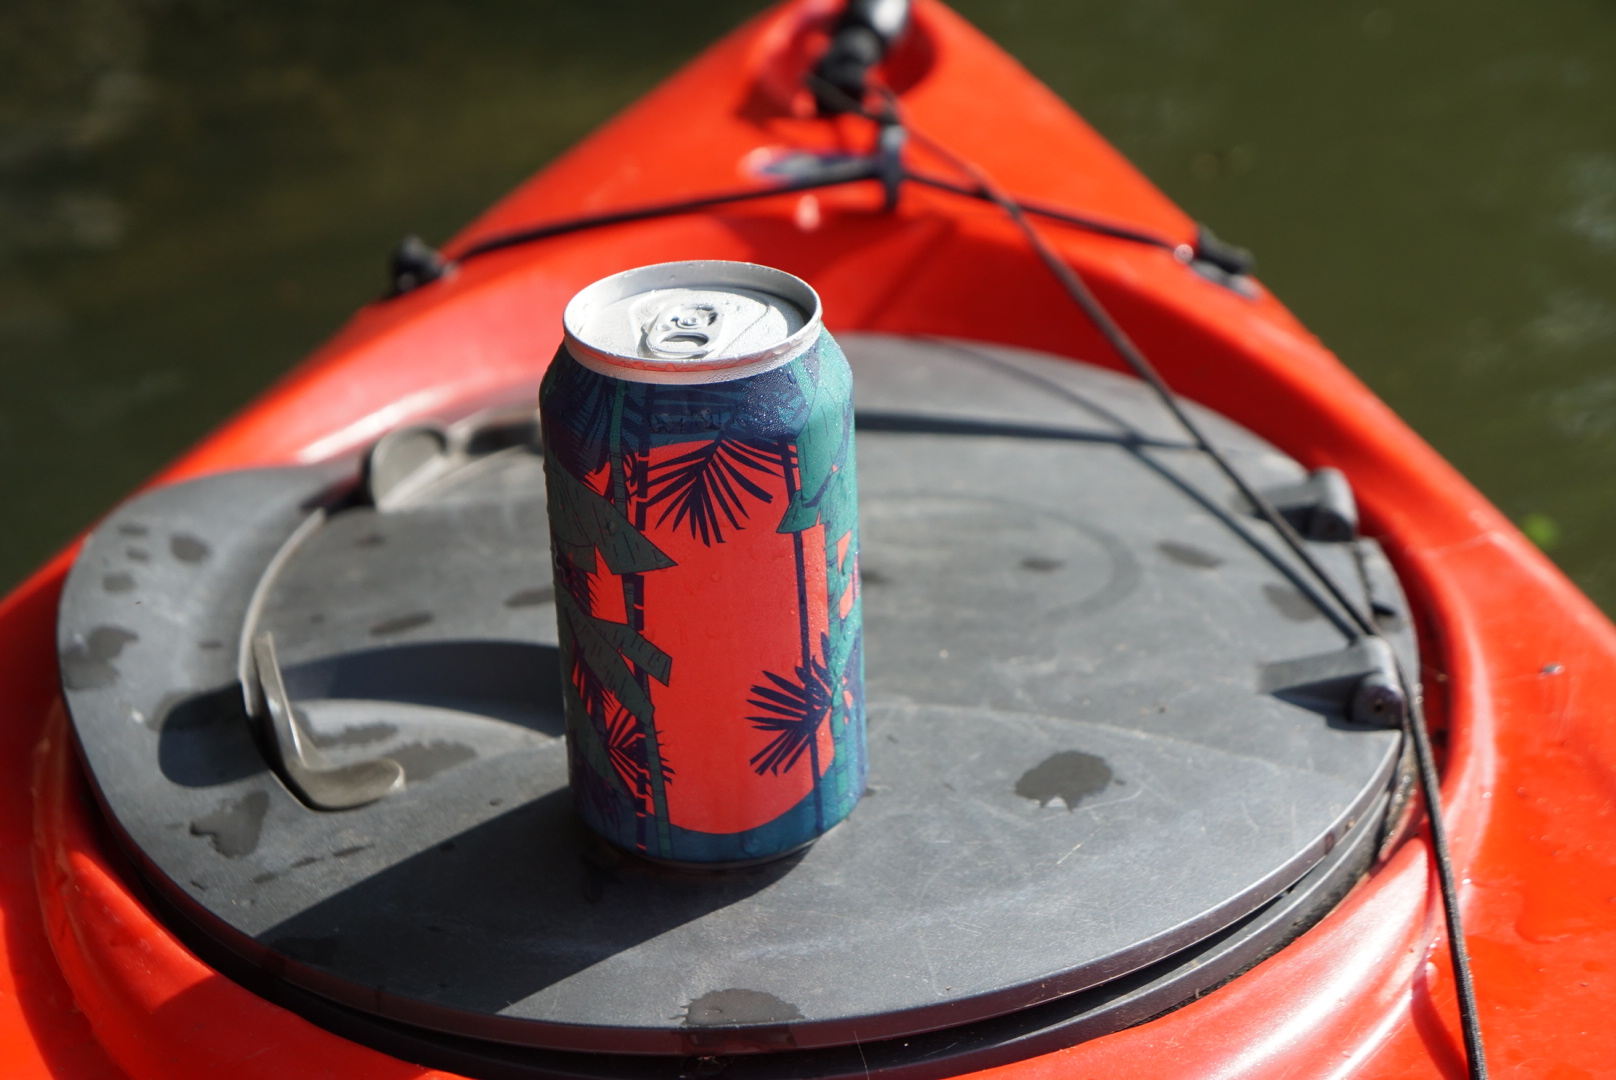 THE EXPLORER  IPA|6.3% ABV  Tropical fruit rules this crisp, refreshing IPA. Hopped with a combination of fruity Mosaic, Azacca and El Dorado, and piney spice from the Chinook hops and rye malt, it's complex and bold.